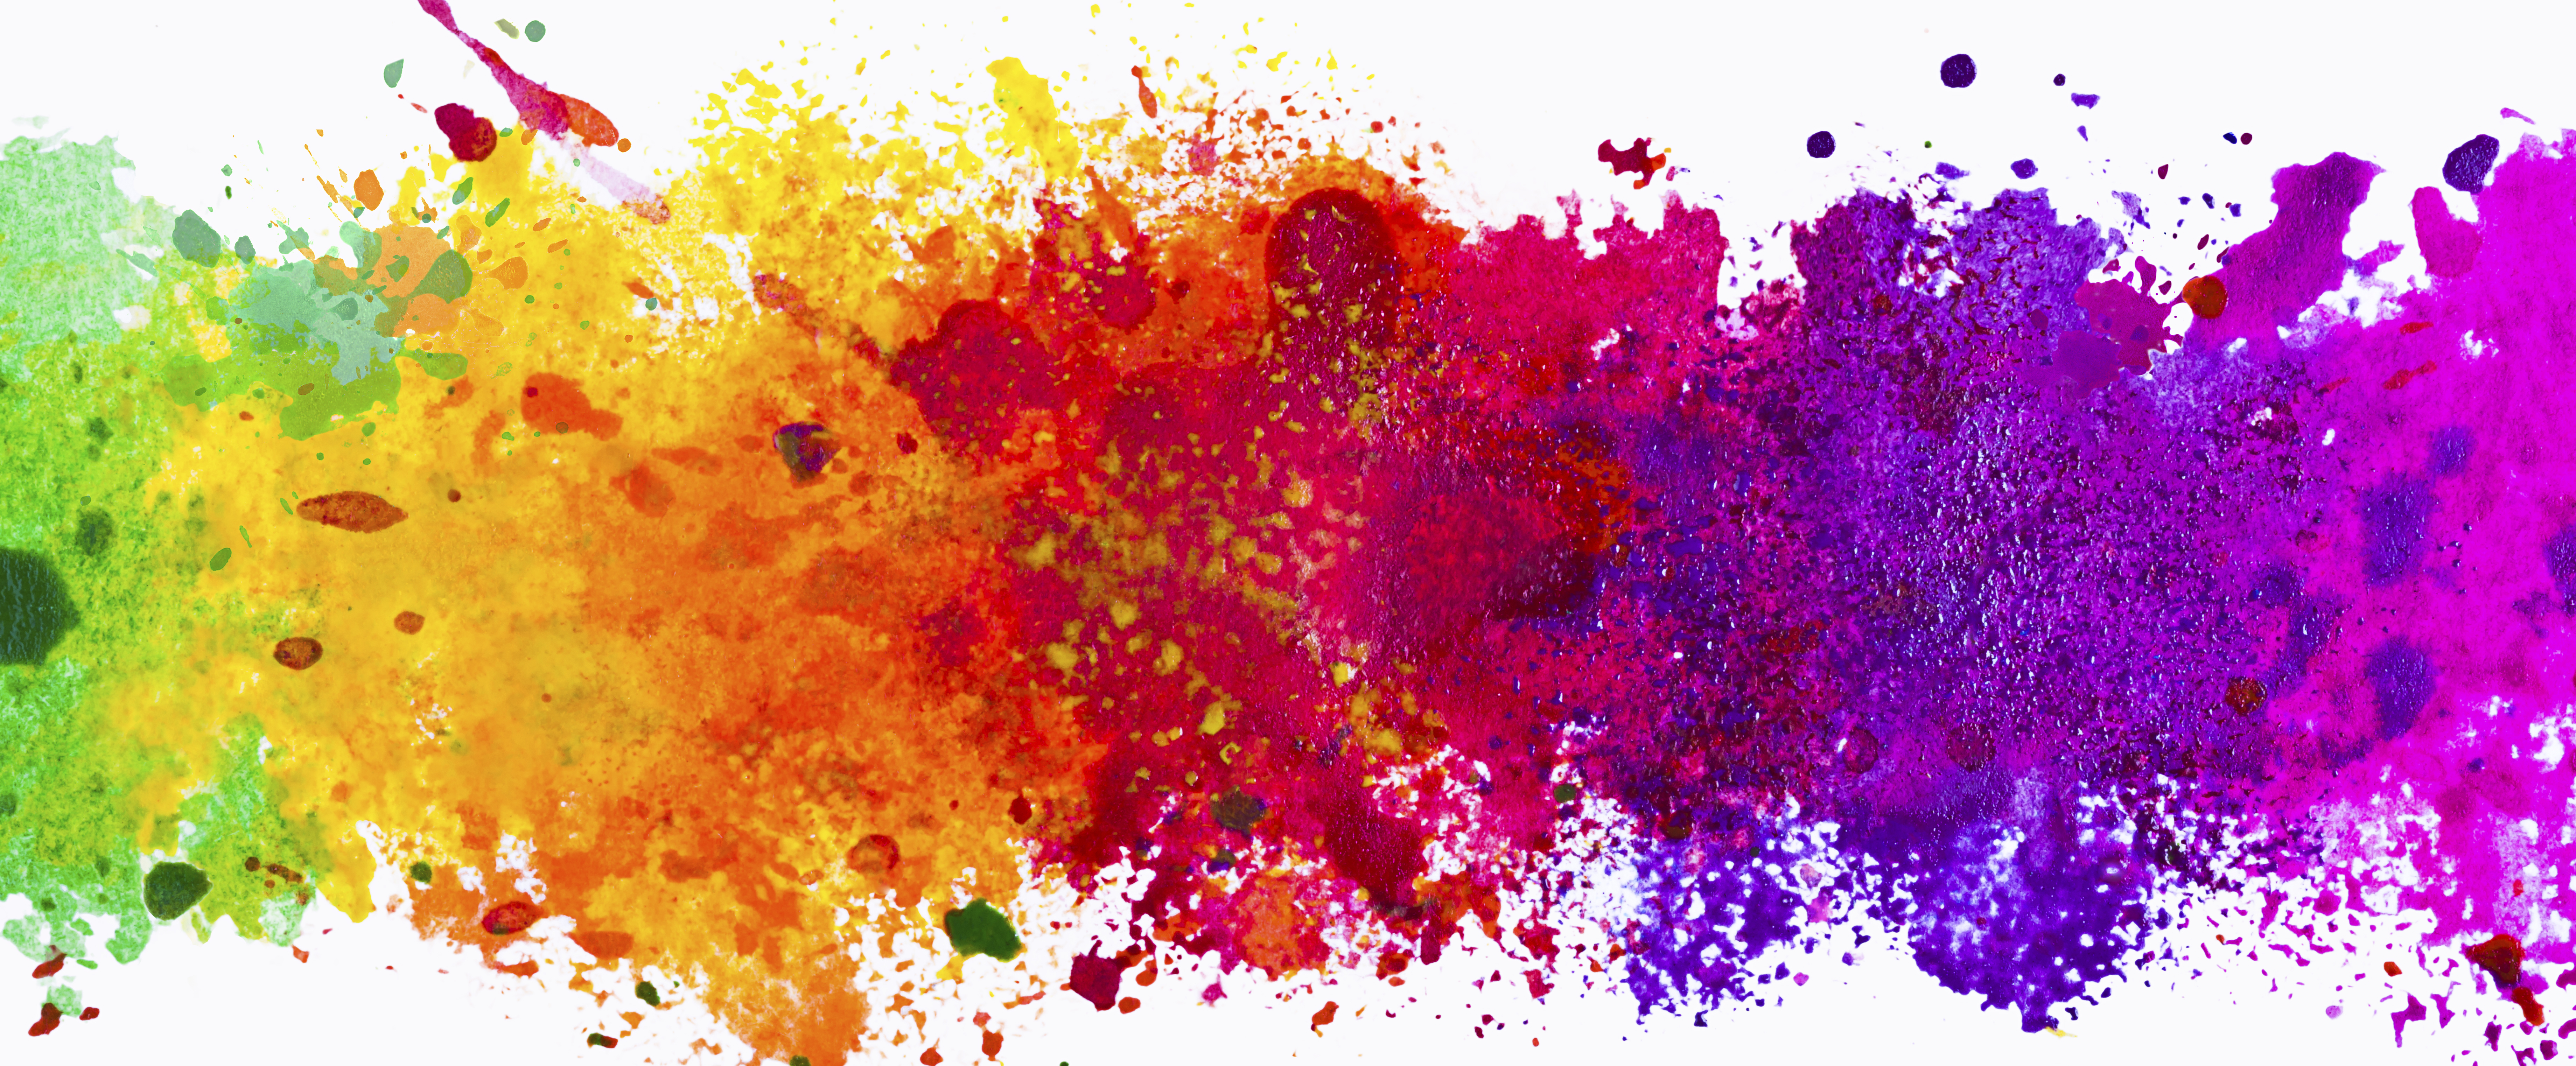 color theory 101 how to choose the right colors for your designs - Picture Color